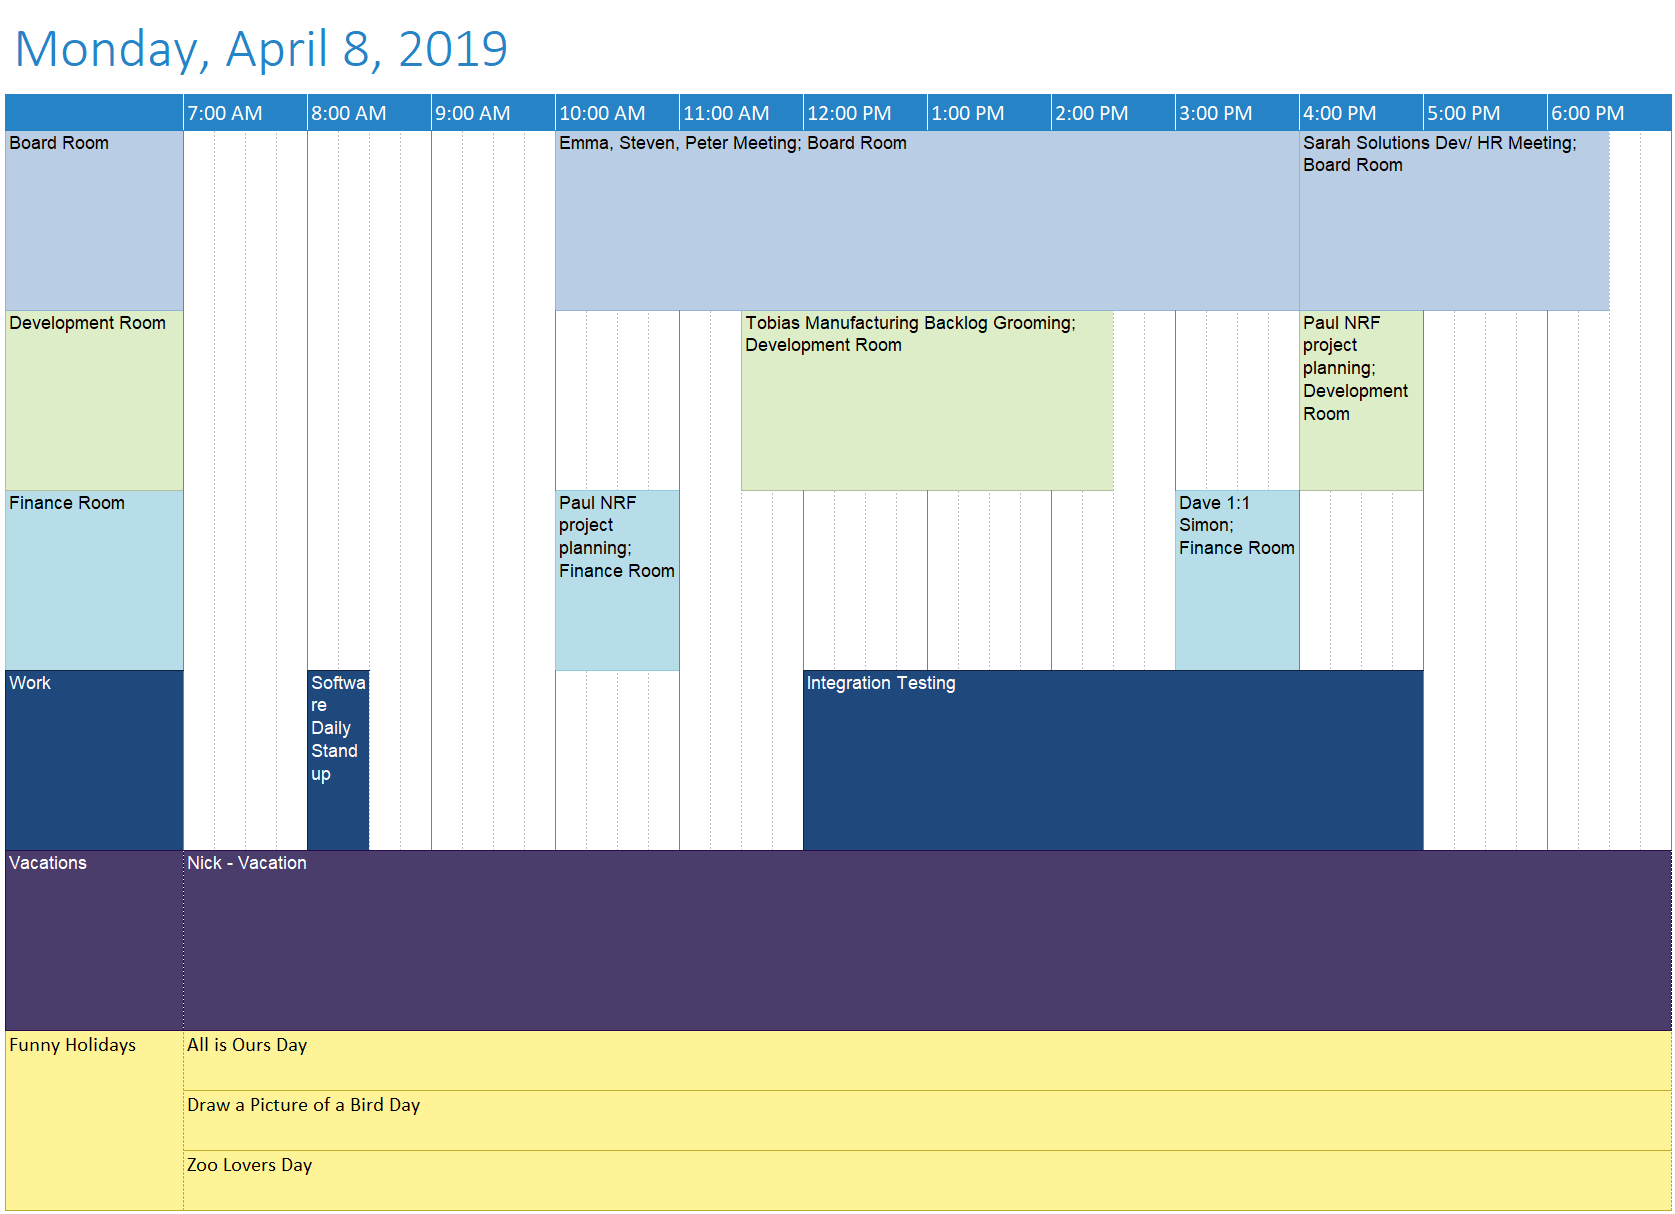 Customize And Print Calendar Templates In Excel And Word pertaining to 5 Day Week Blank Calendar With Time Slots Printable